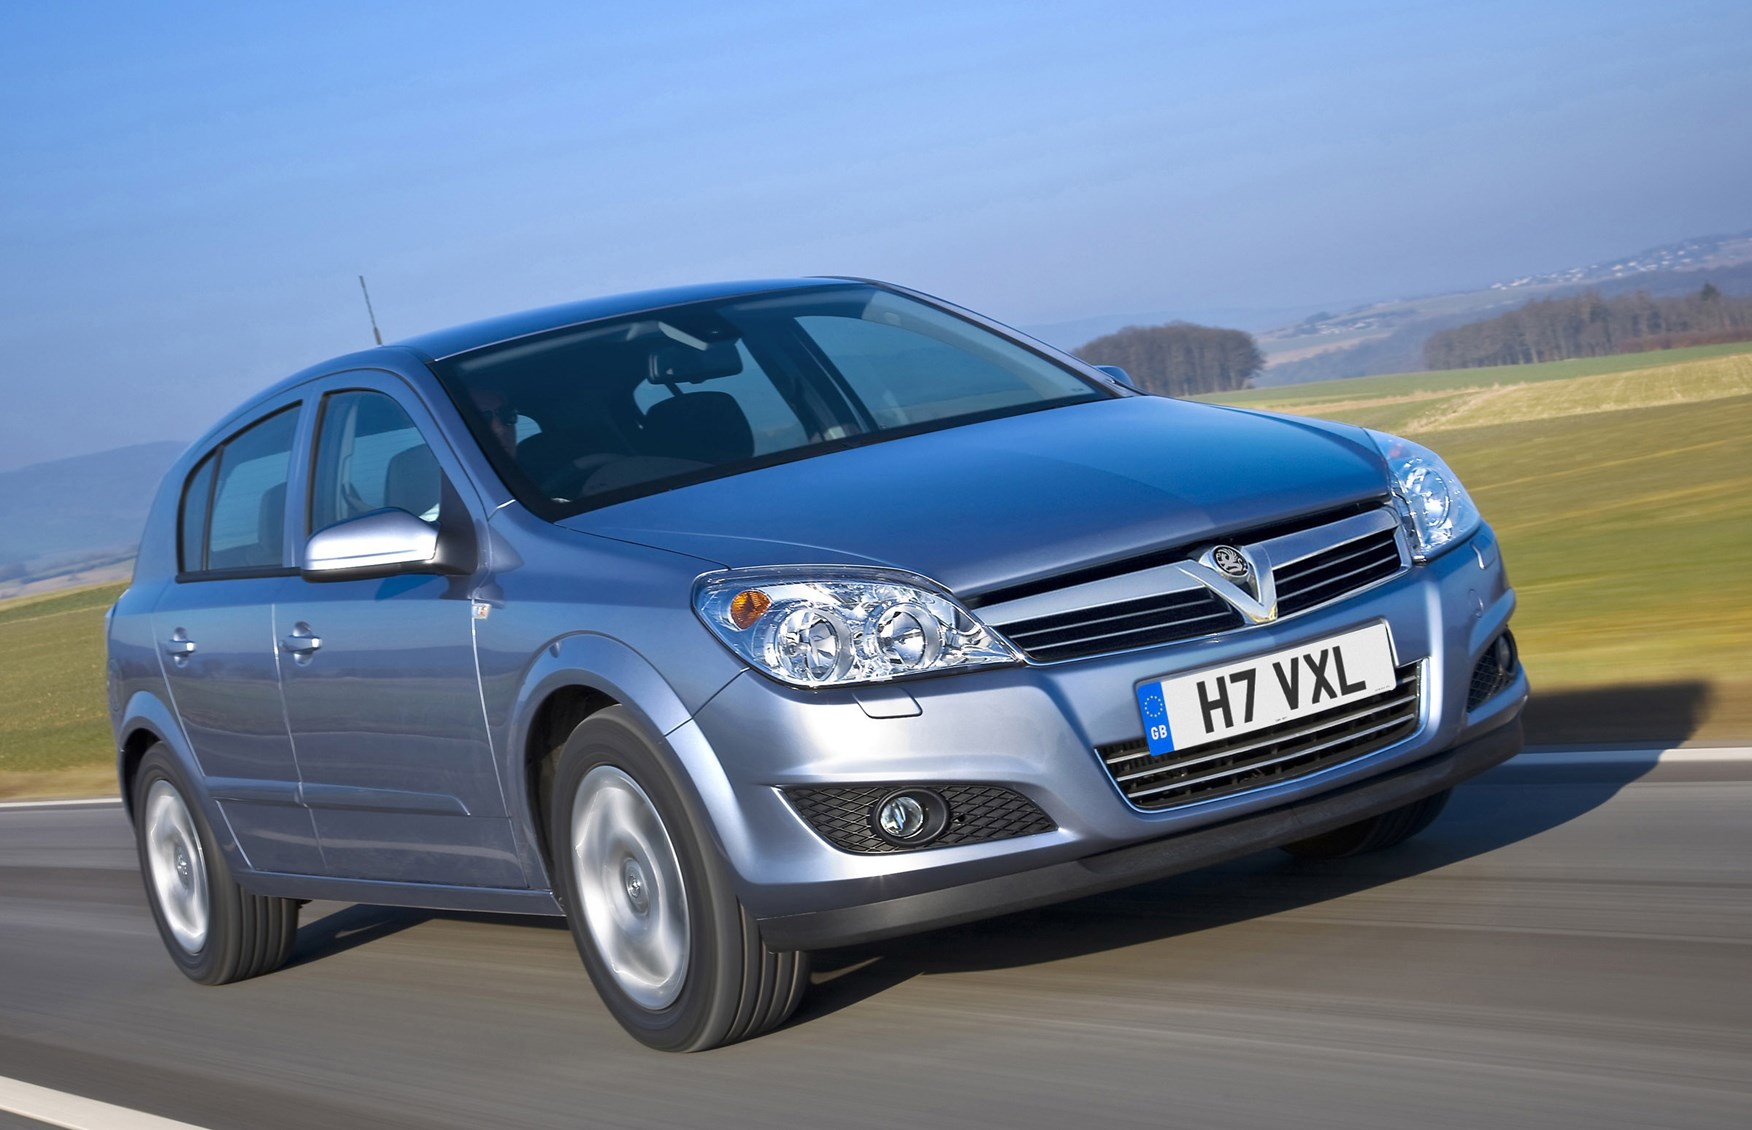 Vauxhall Astra Hatchback 2004 2010 Features Equipment And Sxi Engine Fuse Box Diagram Accessories Parkers